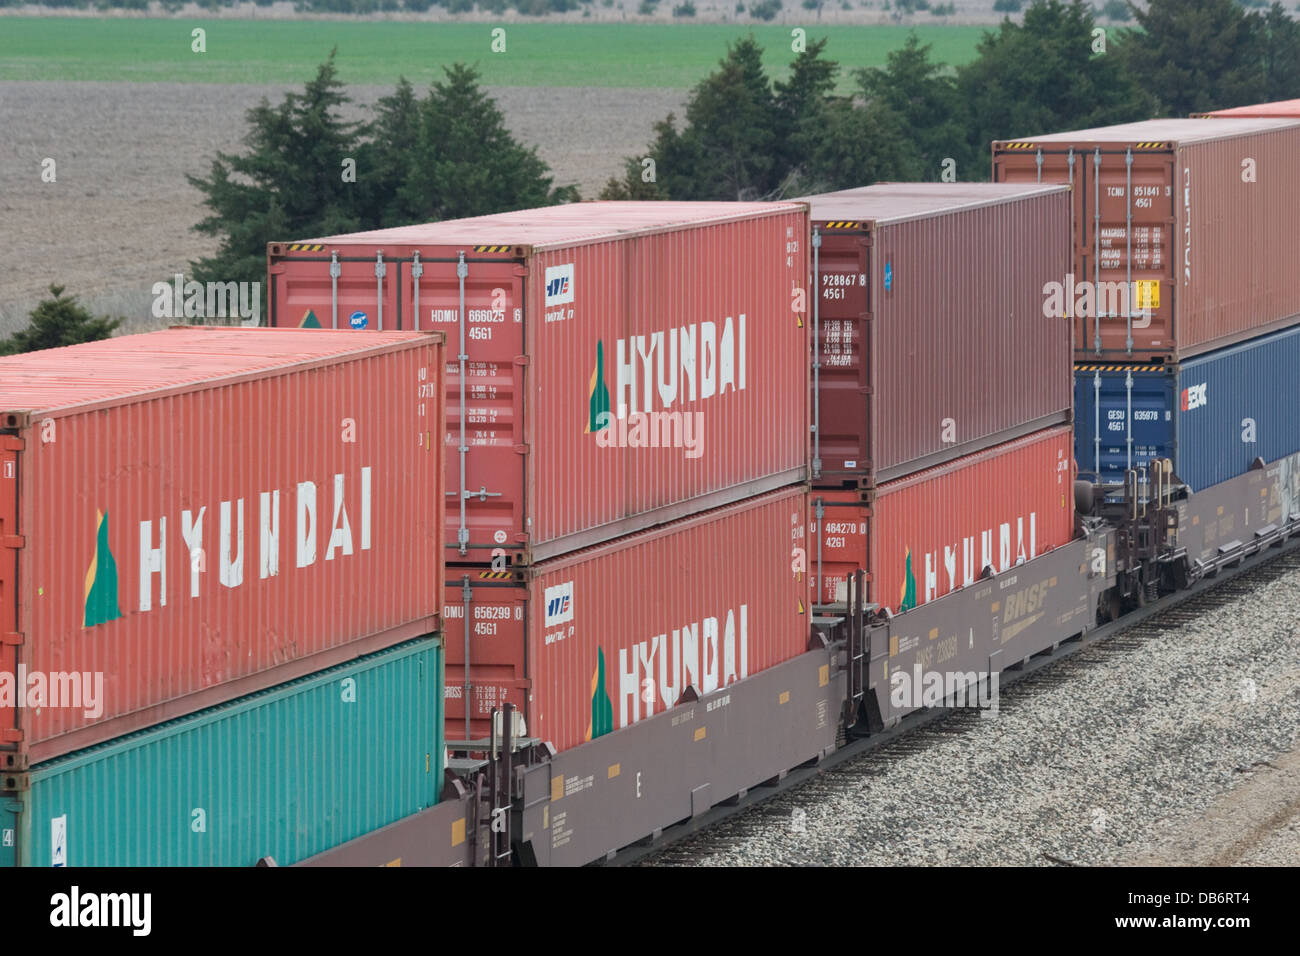 Hyundai intermodal freight containers on BNSF freight ...